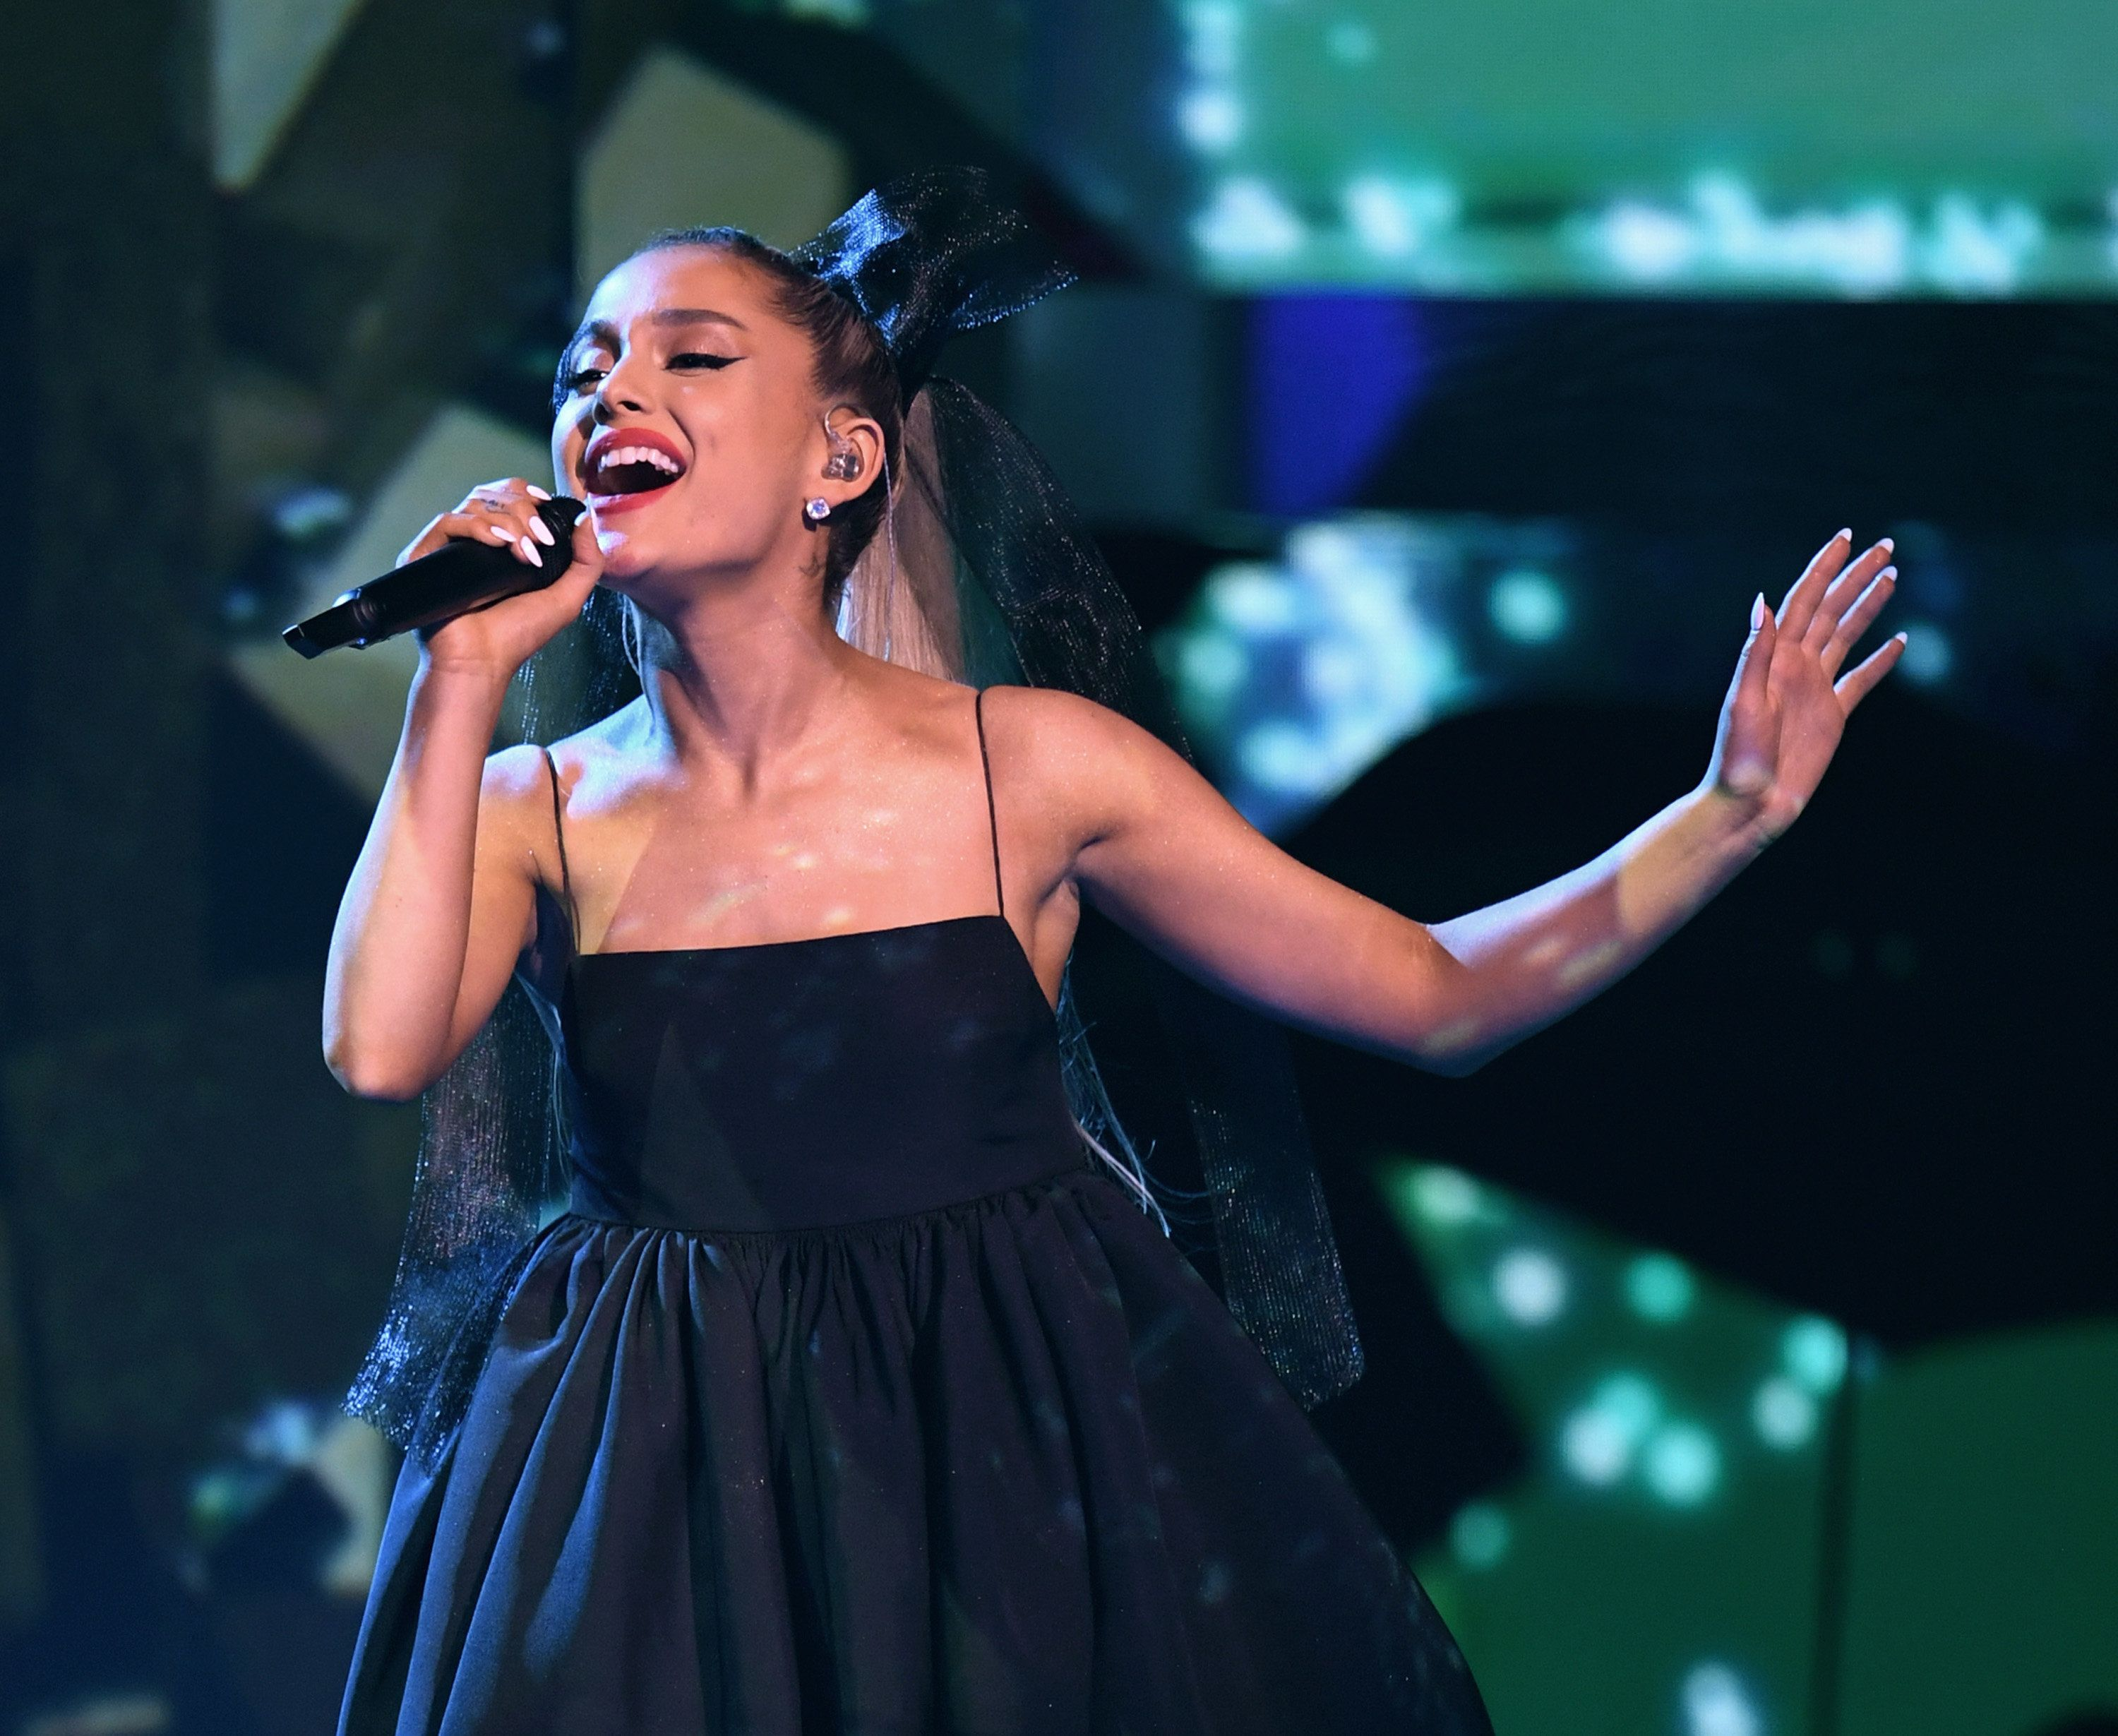 LAS VEGAS, NV - MAY 20:  Singer Ariana Grande performs at the 2018 Billboard Music Awards at the MGM Grand Garden Arena on May 20, 2018 in Las Vegas, Nevada.  (Photo by Kevin Winter/Getty Images)